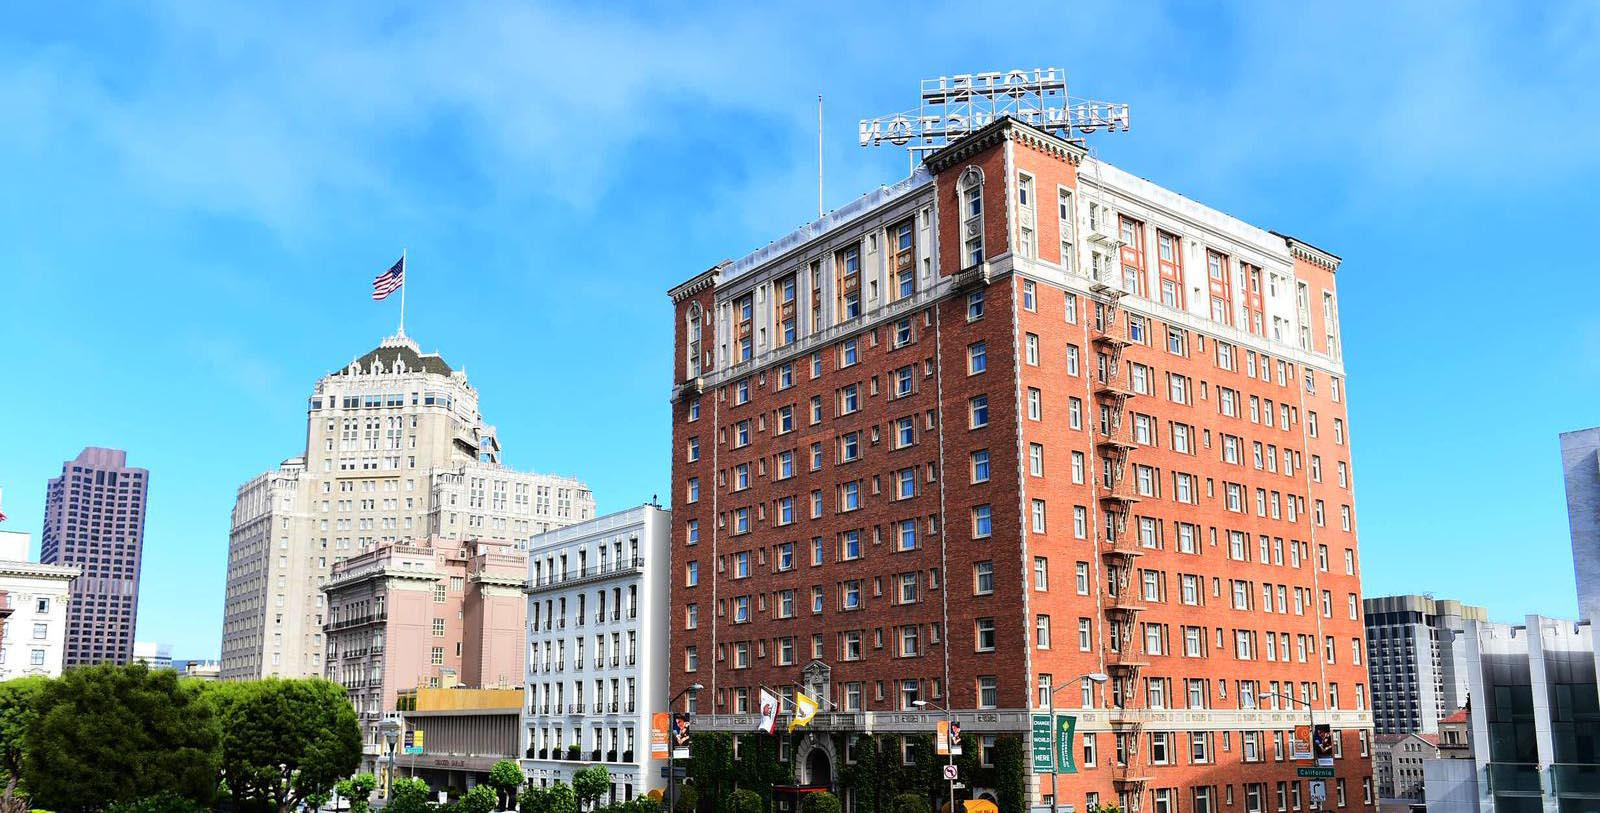 Image of Exterior The Huntington Hotel, 1924, Member of Historic Hotels of America, in San Francisco, Special Offers, Discounted Rates, Families, Romantic Escape, Honeymoons, Anniversaries, Reunions